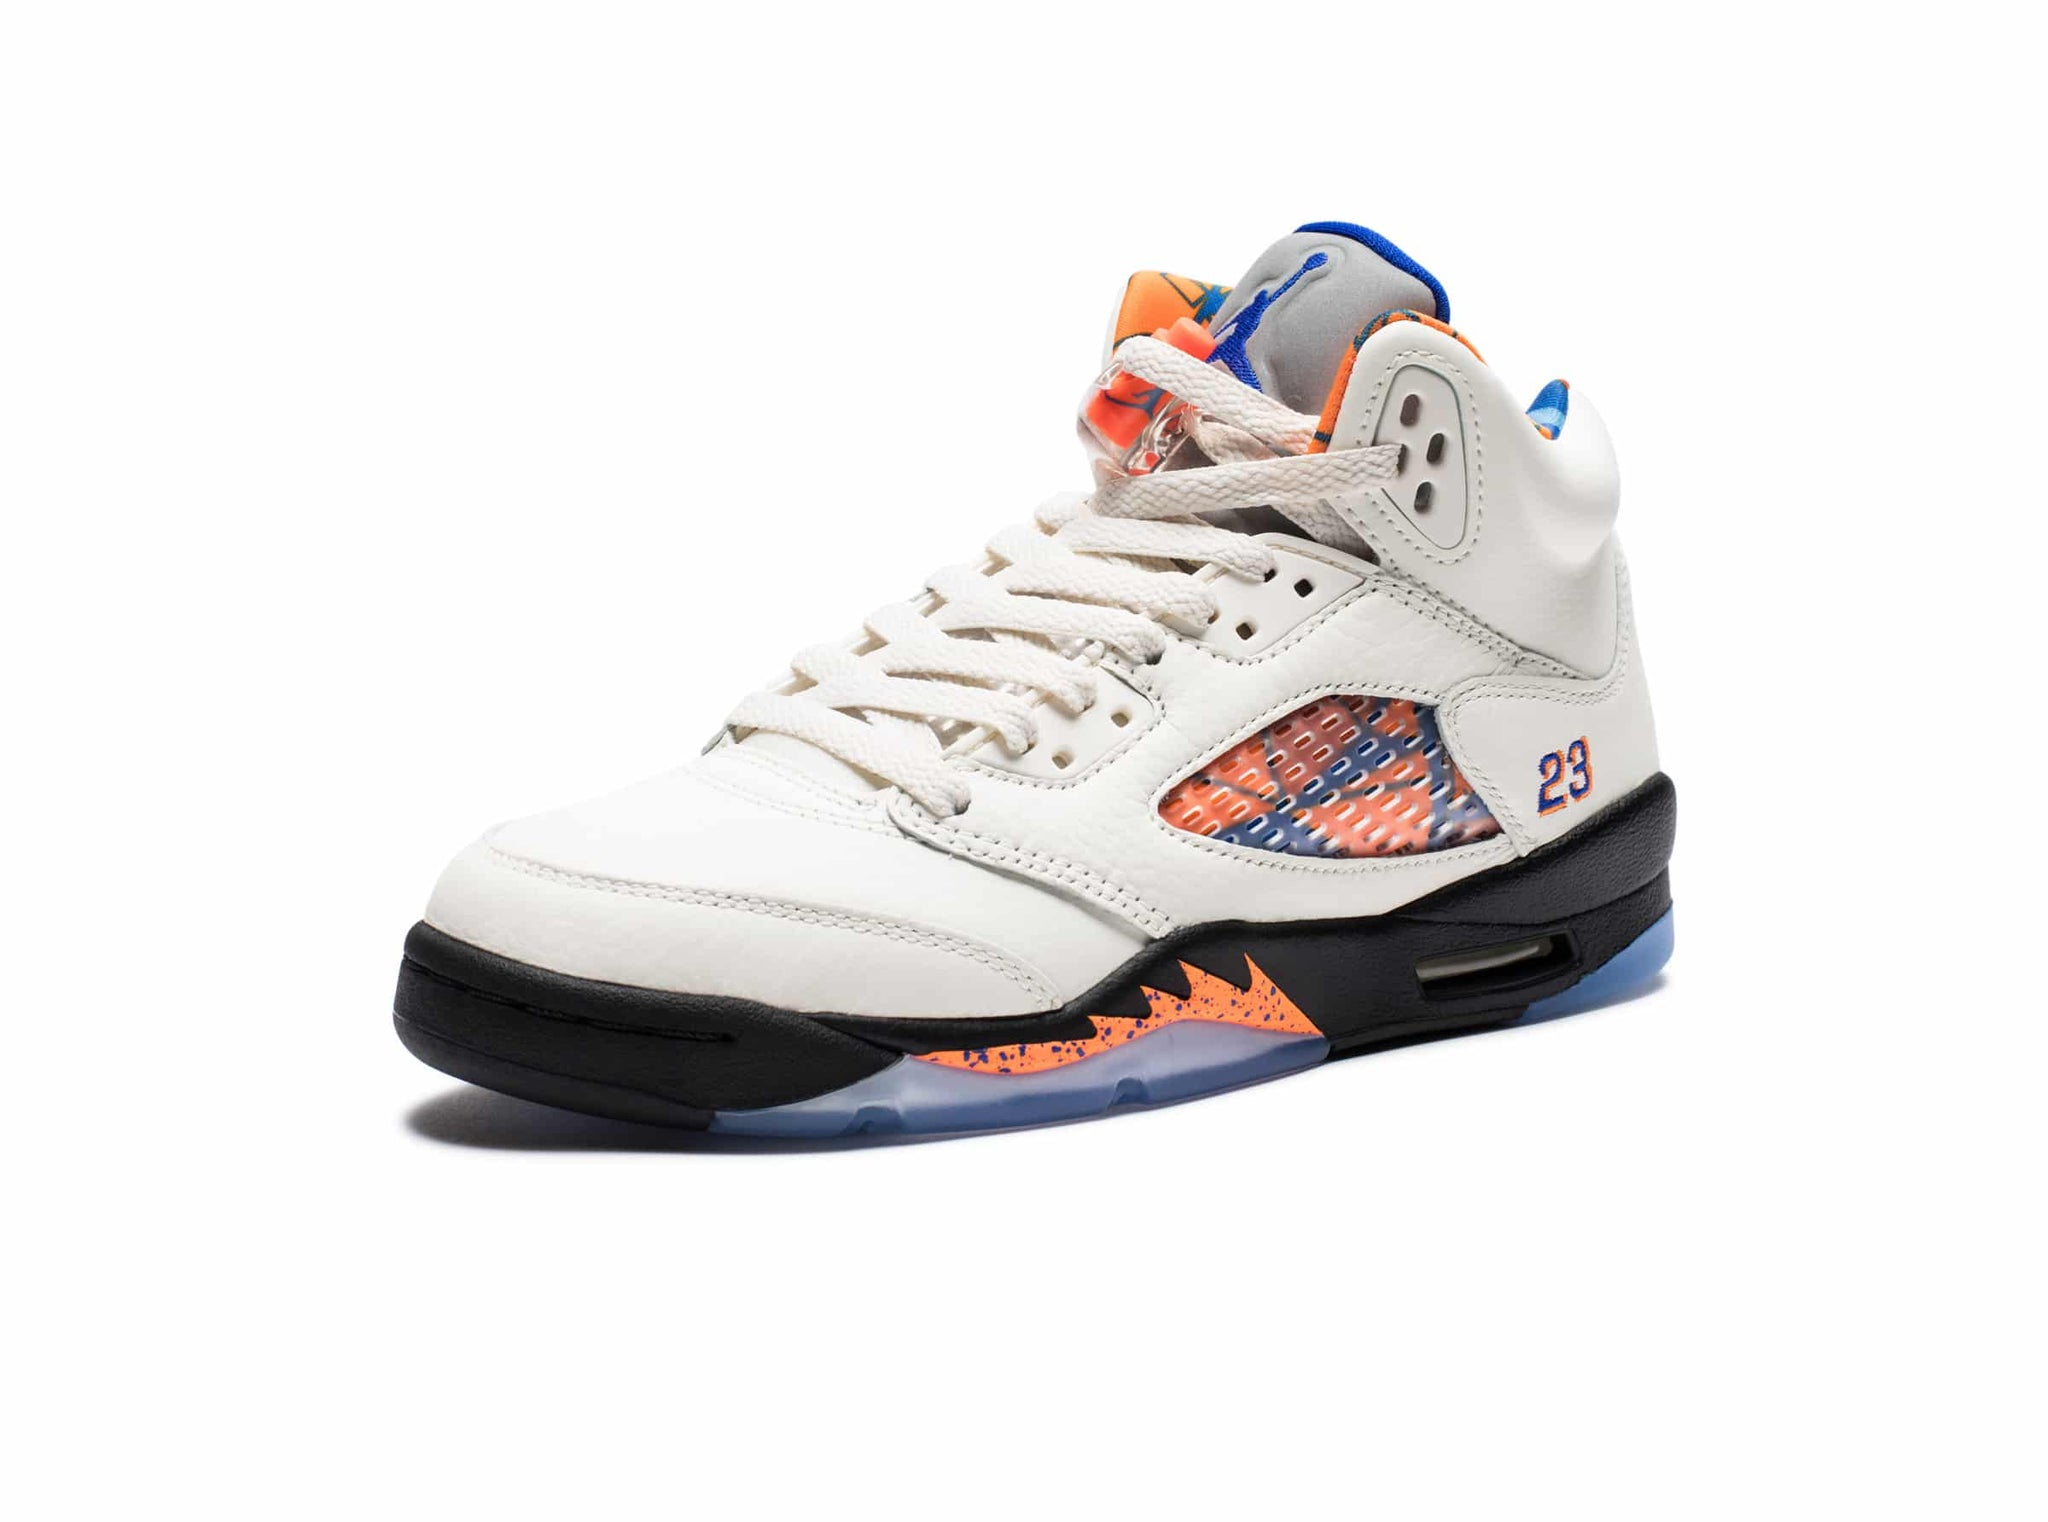 GS AIR JORDAN 5 RETRO - SAIL/RACERBLUE/CONE/BLACK